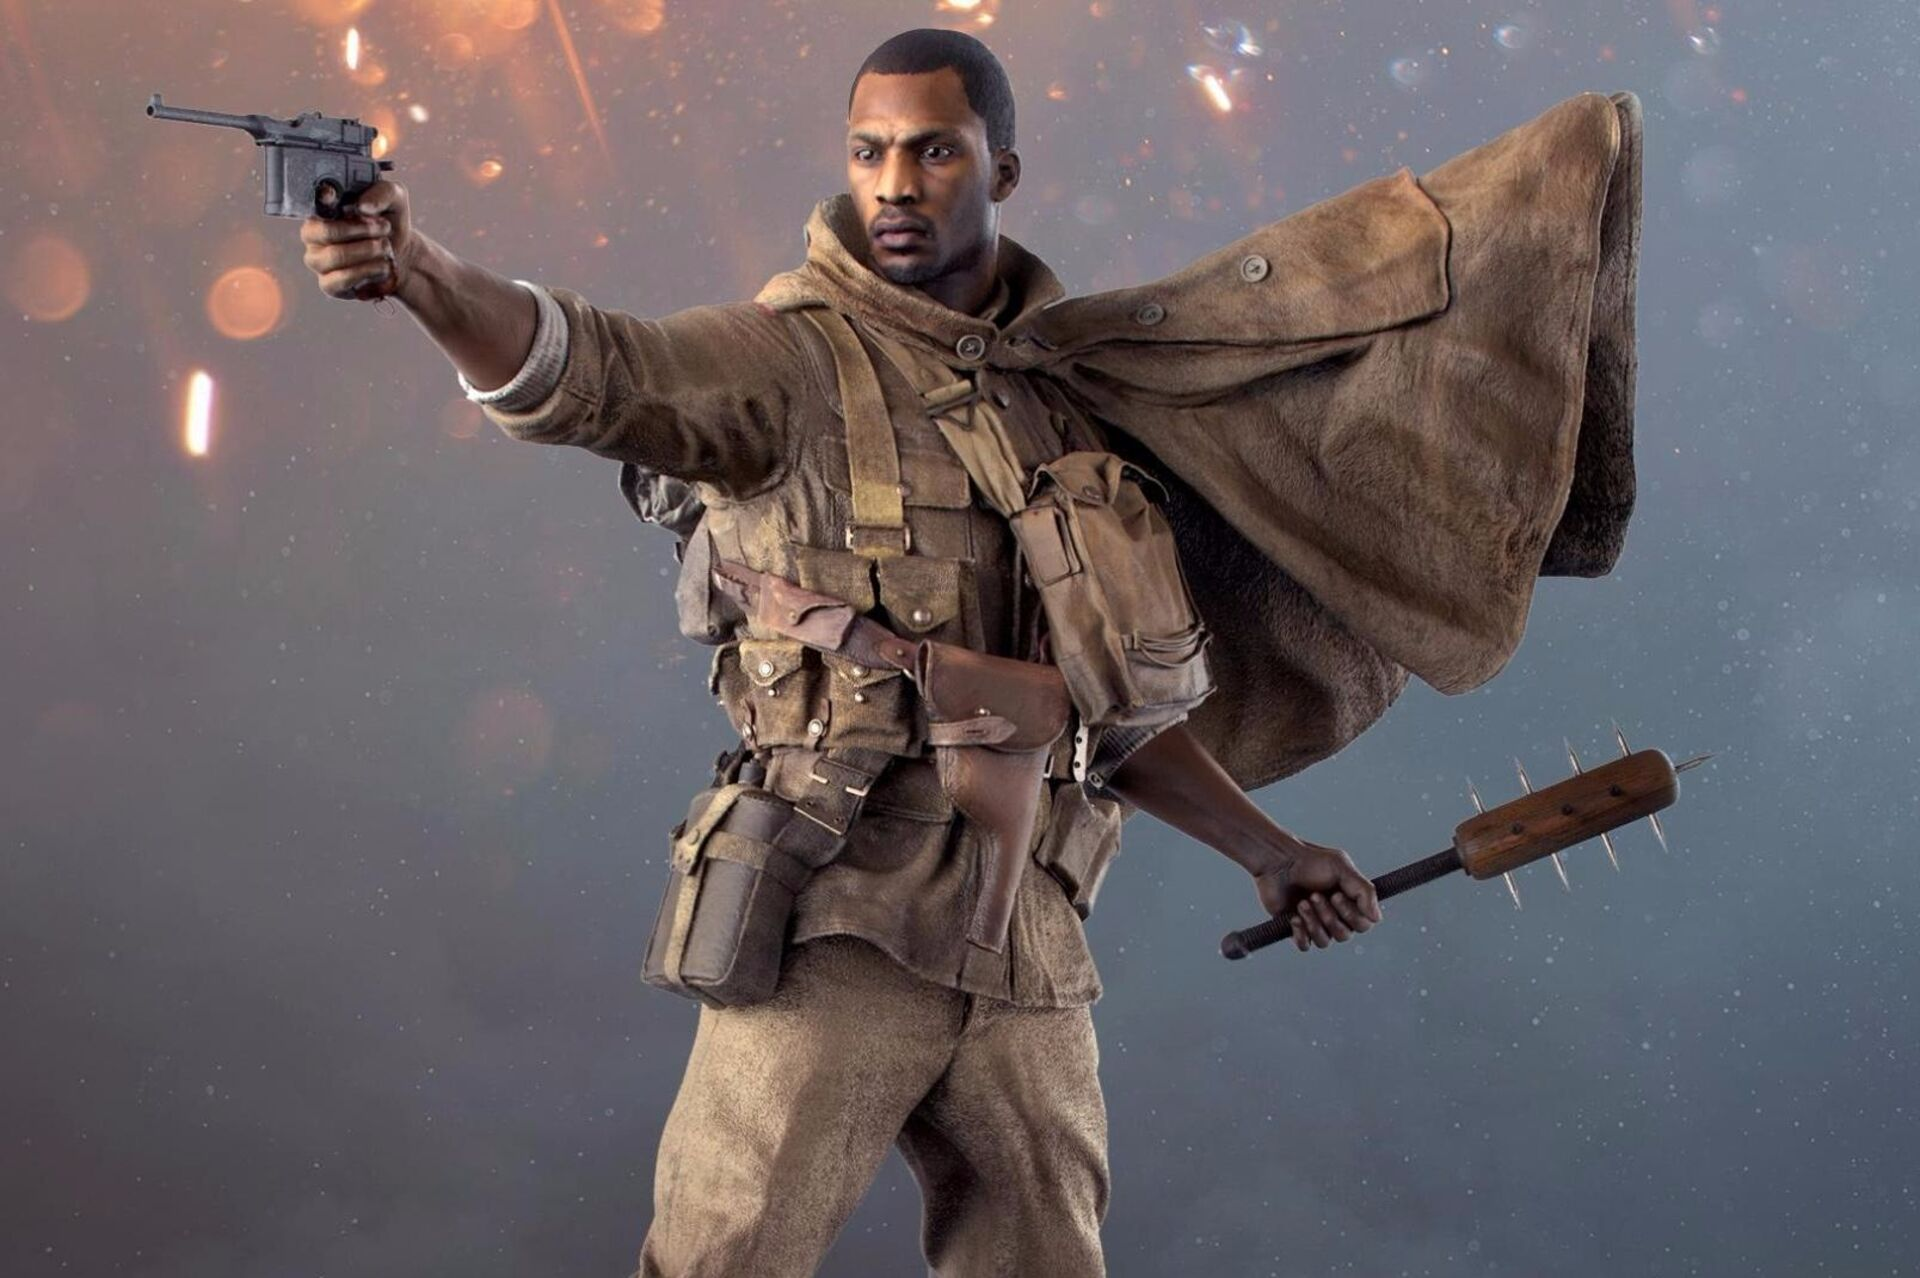 PS4 Pro gives Battlefield 1 gamers a multiplayer advantage